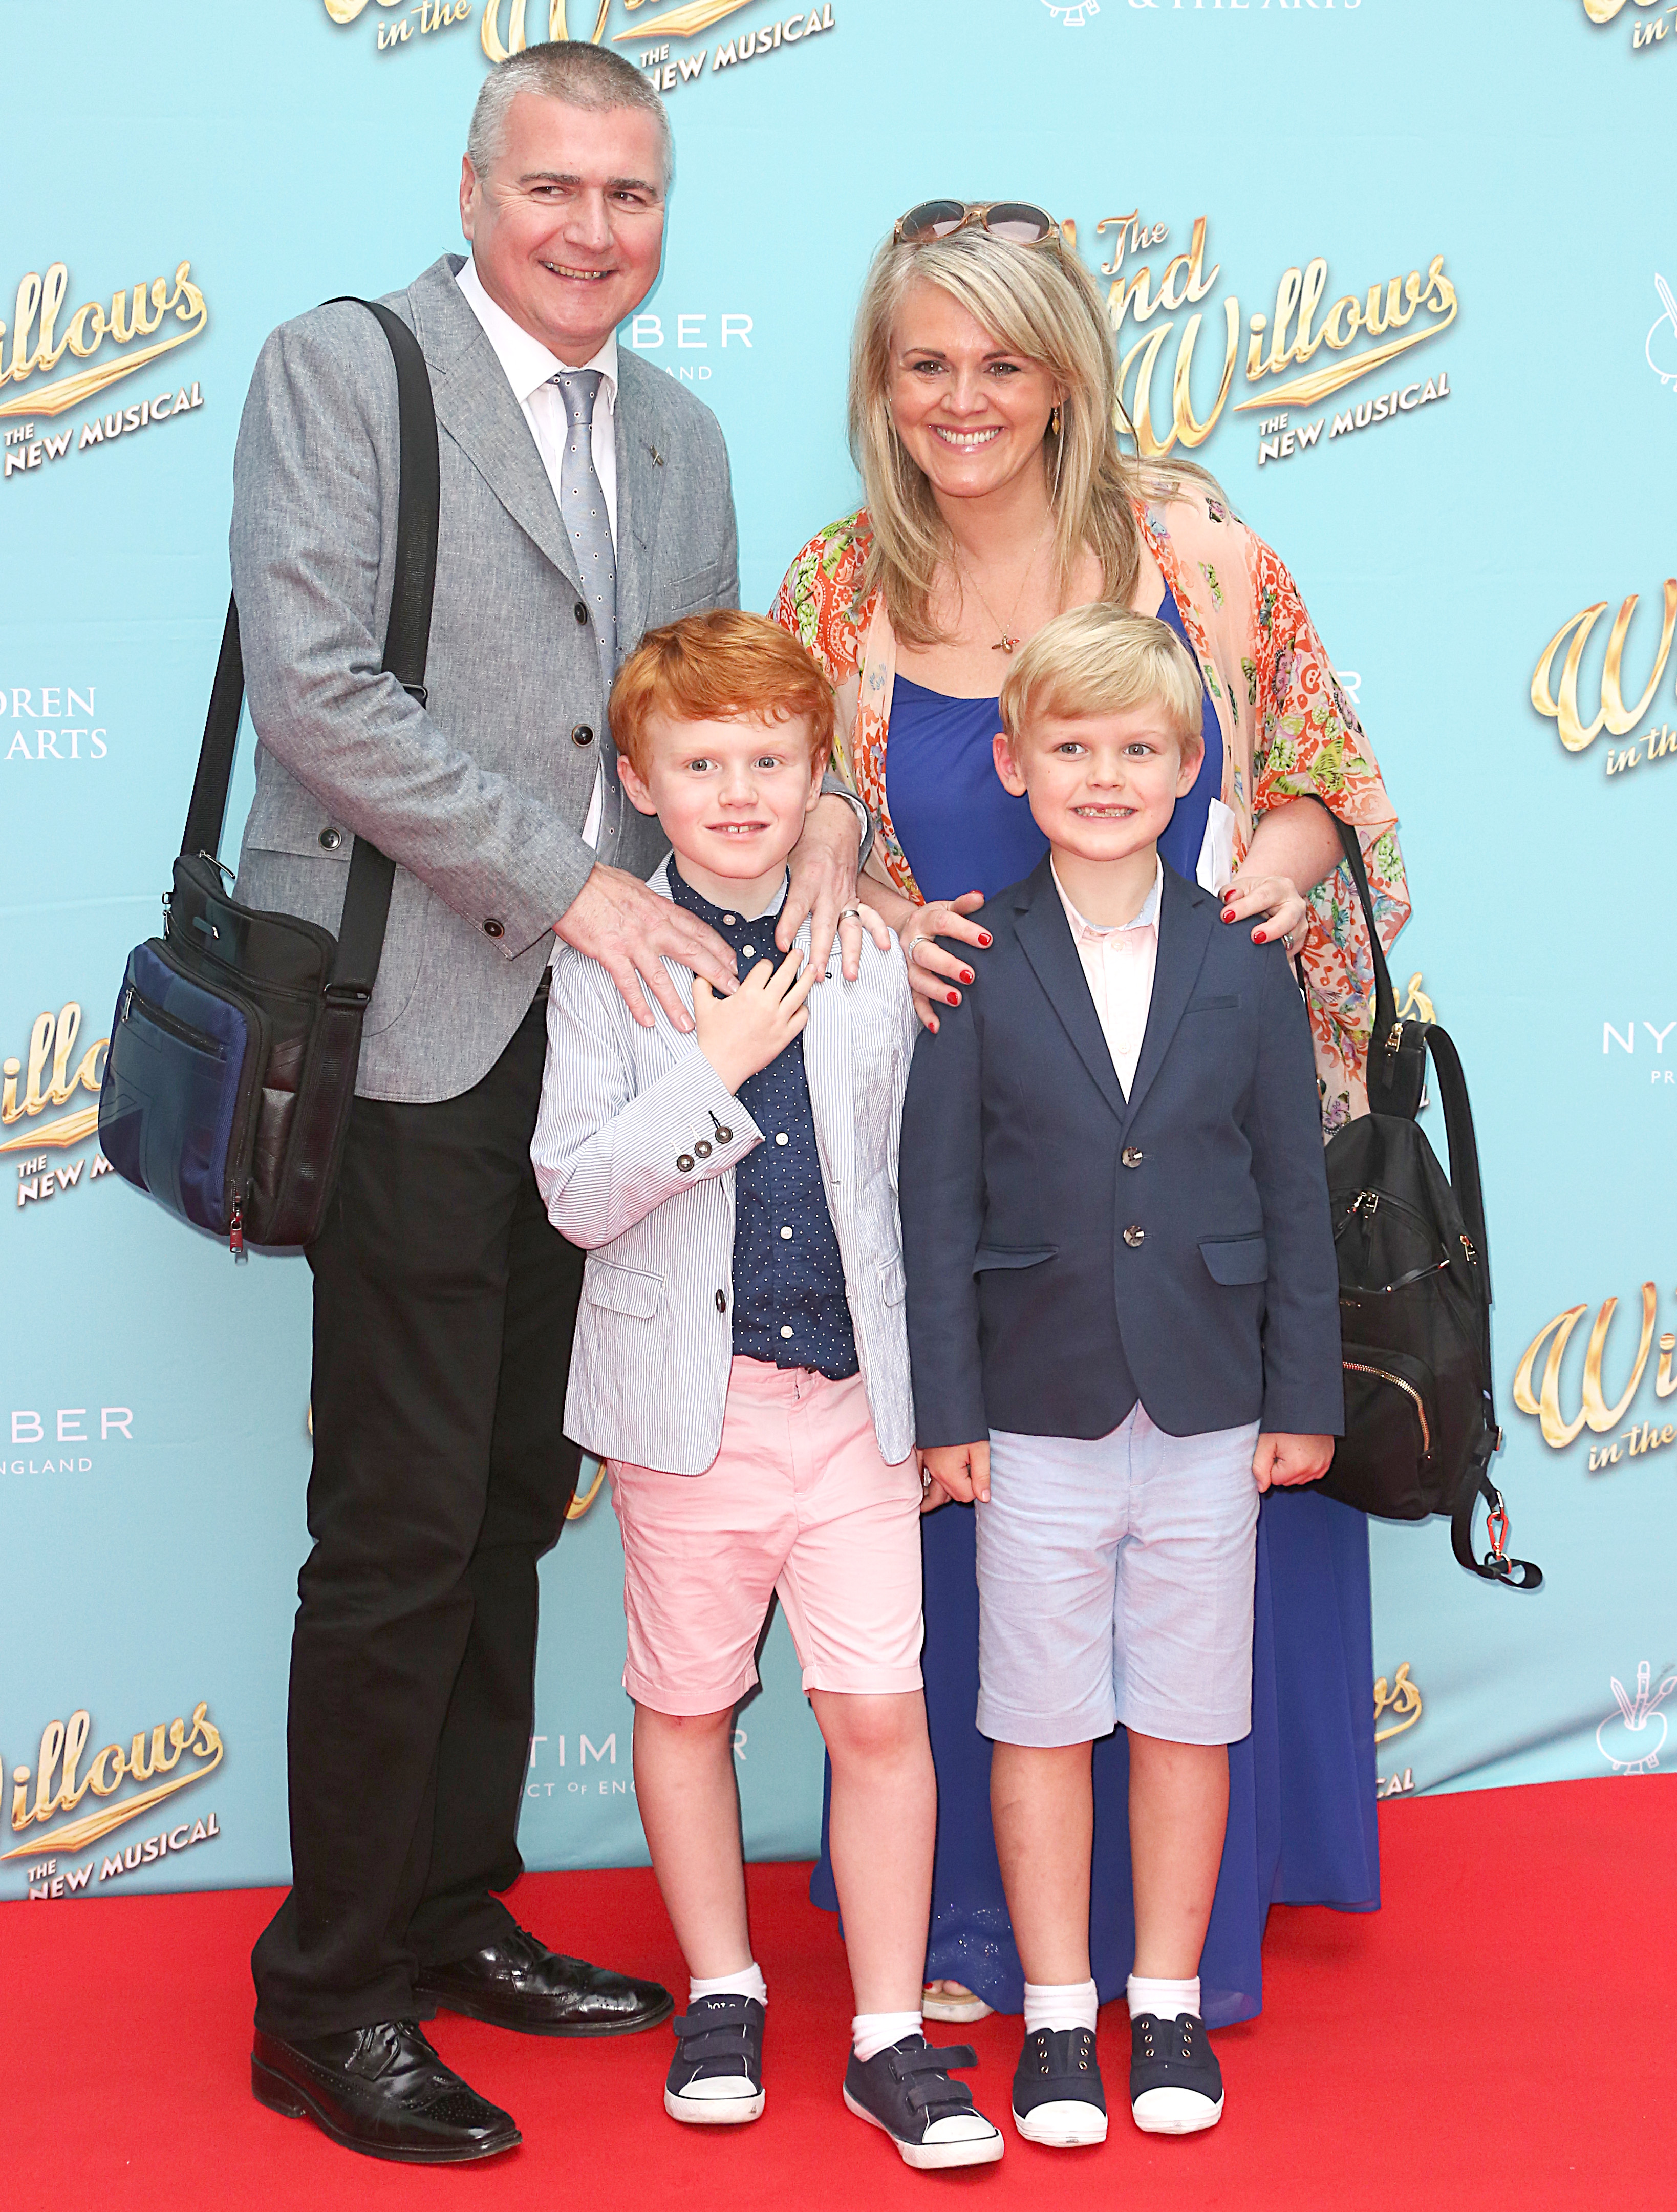 The Wind In The Willows: The New Musical - Gala Opening Night, London Palladium, London UK, 29 June 2017, Photo by Brett D. Cove Pictured: Sally Lindsay,Natalie Rushdie Neil Buchanan Nicola Stephenson Nitin Ganatra Noah Huntley Noelle Reno Richard Jones Rufus Hound Sally Lindsay Sam Attwater Sarah Ferguson Julian Fellowes Scroobius Pip Shane Ritchie Simon Weston Steph Parker Dom Parker Stephen Tompkinson Tracie Bennett Ref: SPL1530454 300617 NON-EXCLUSIVE Picture by: SplashNews.com Splash News and Pictures Los Angeles: 310-821-2666 New York: 212-619-2666 London: 0207 644 7656 Milan: +39 02 56567623 photodesk@splashnews.com World Rights